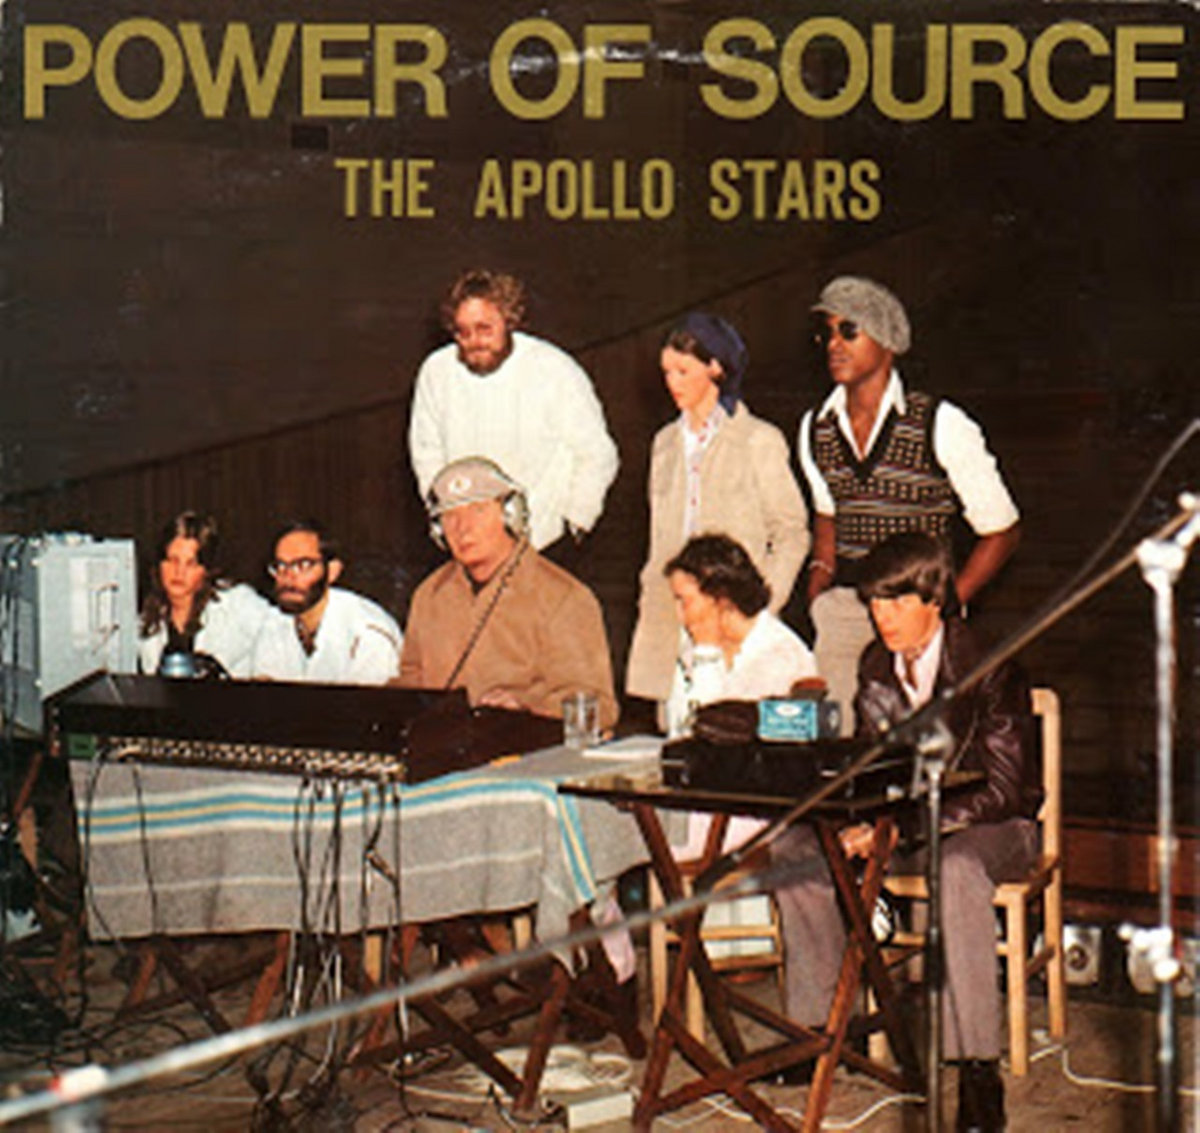 9123dcb5f82 The Apollo Stars. by POWER OF SOURCE